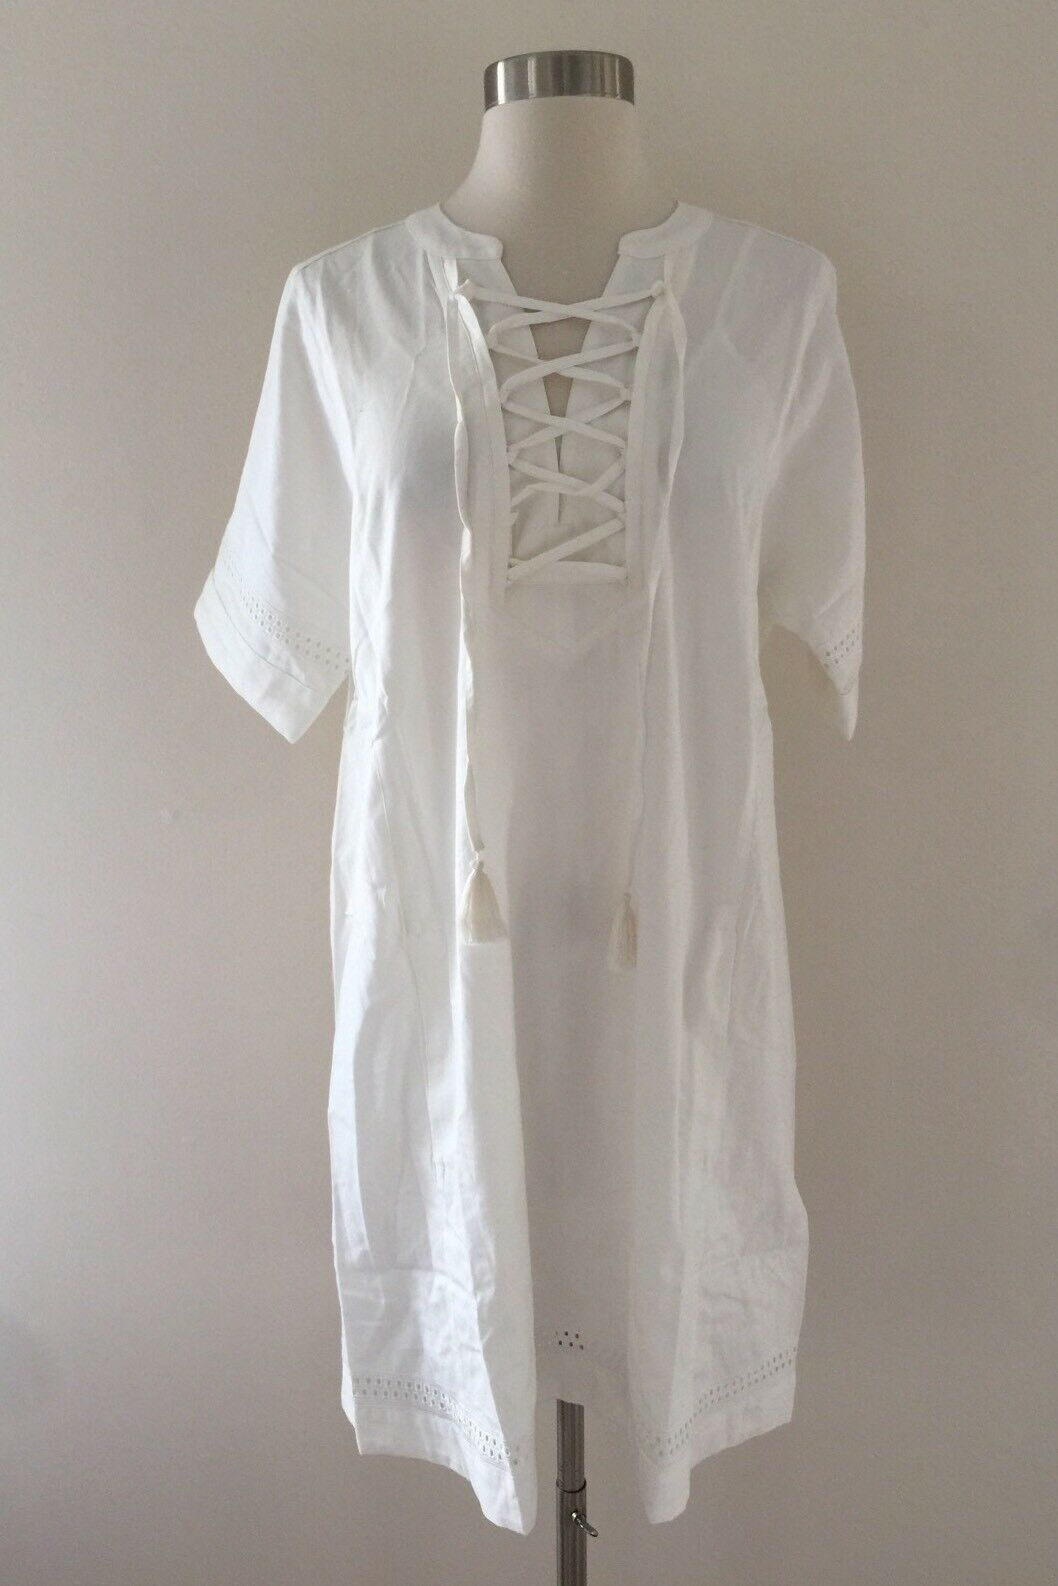 New Madewell X Daryl K Beverly Lace-Up Dress  E7675 Size S in WHITE